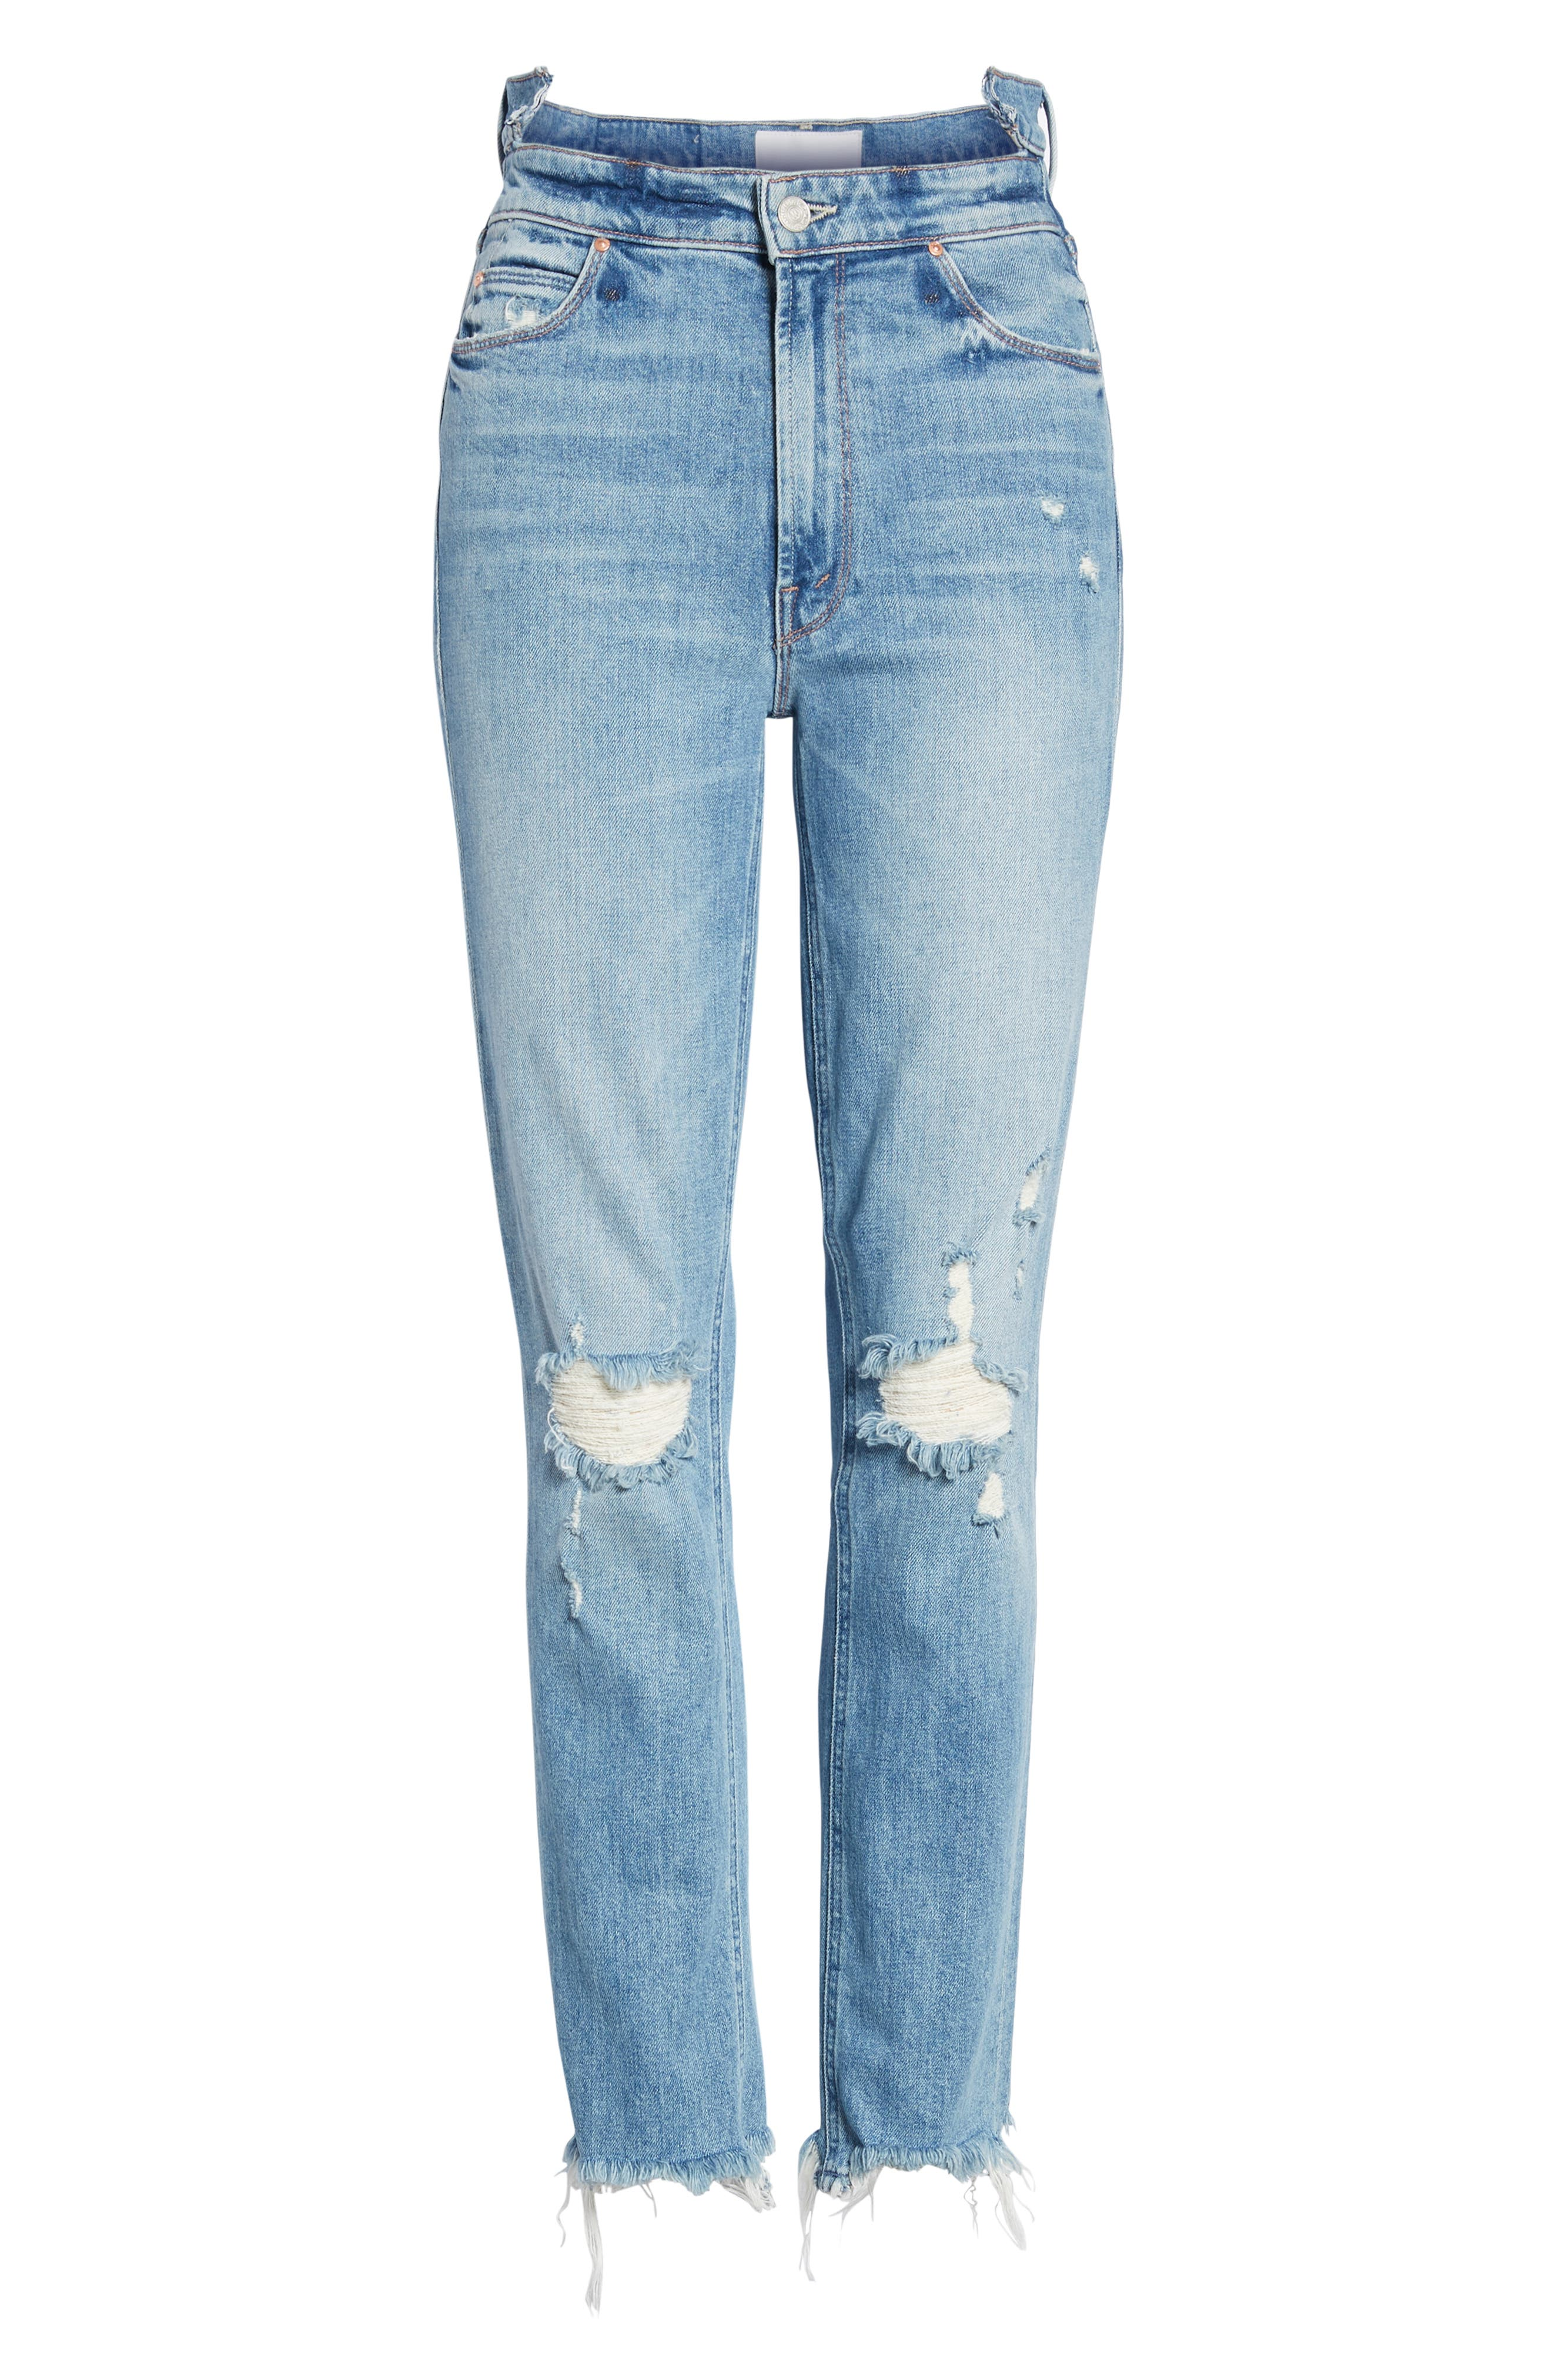 Dazzler Shift Step Waistband Jeans,                             Alternate thumbnail 7, color,                             452